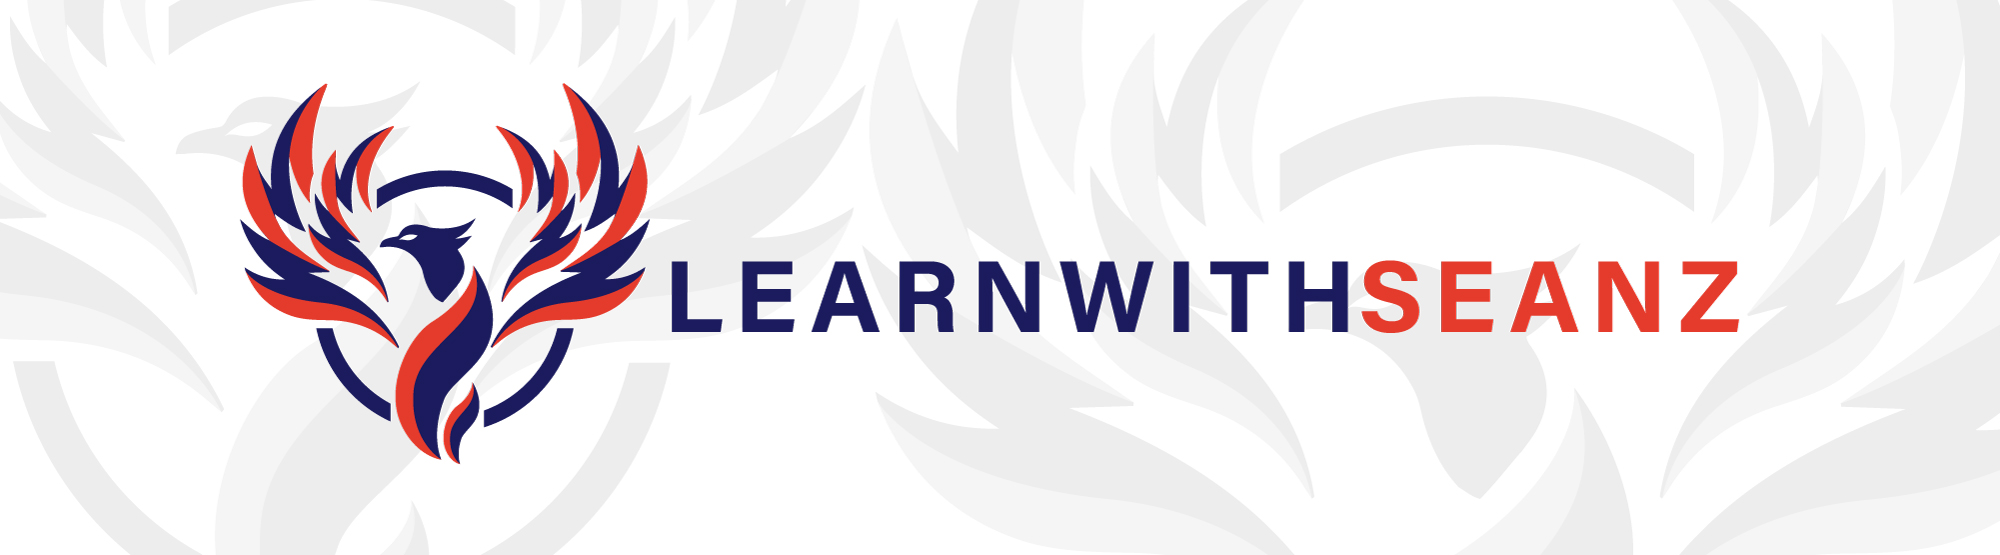 LearnWithSeanz